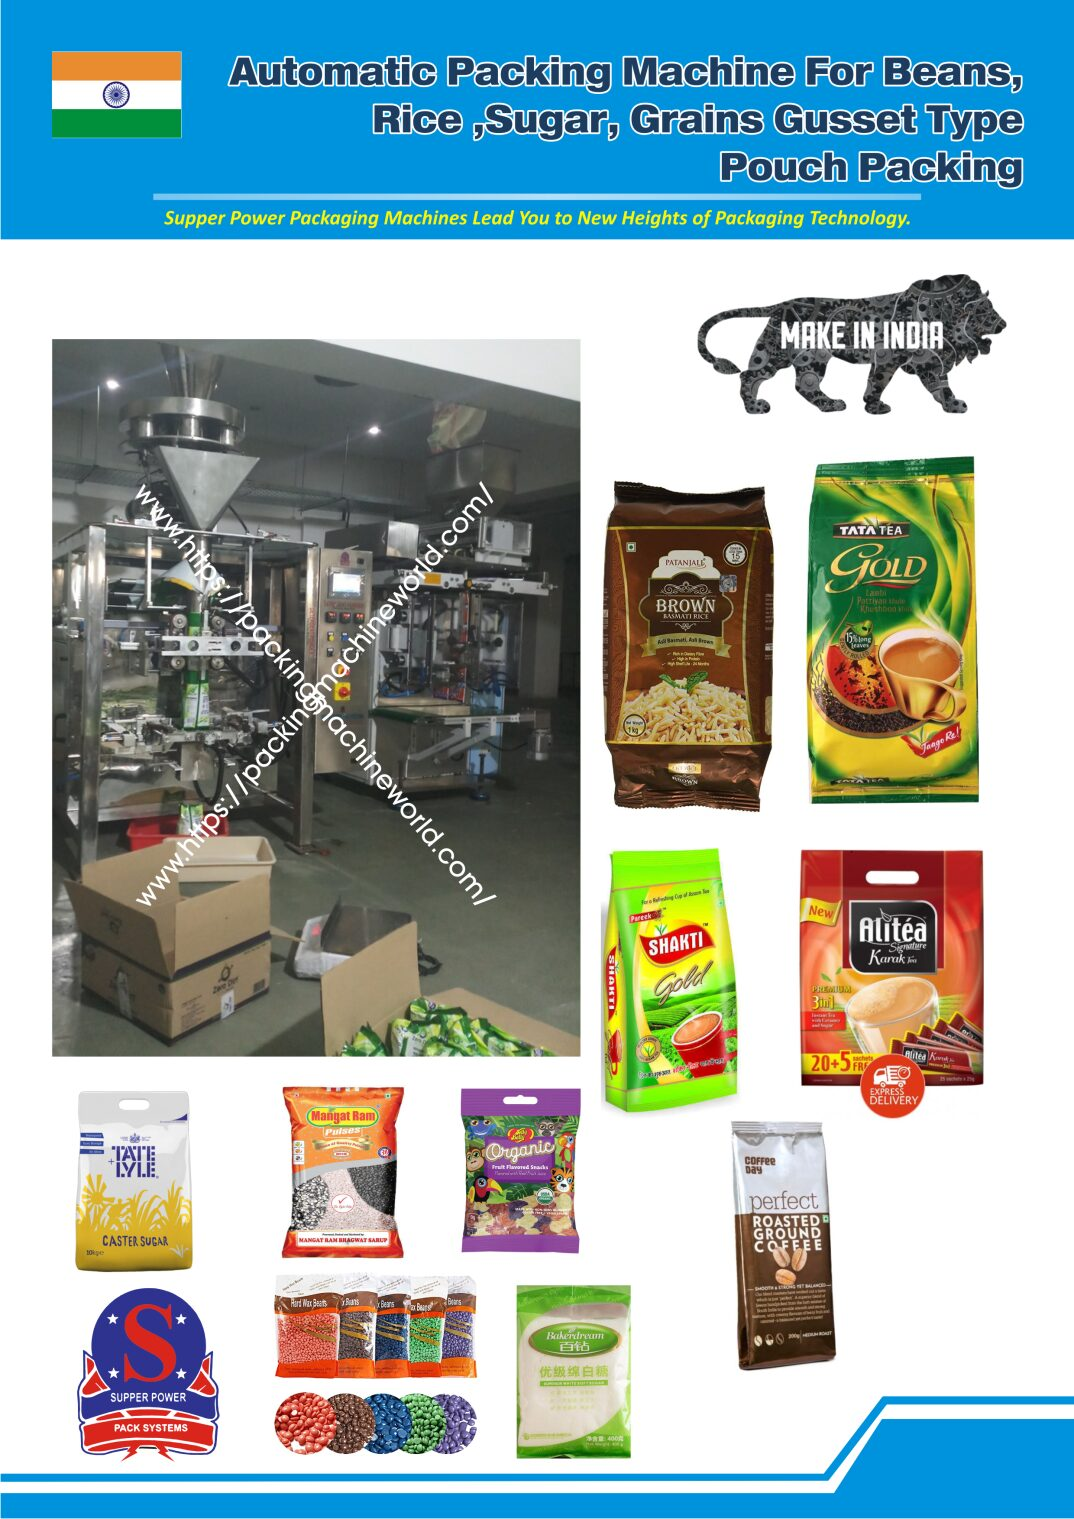 Beans Automatic Packing Machine